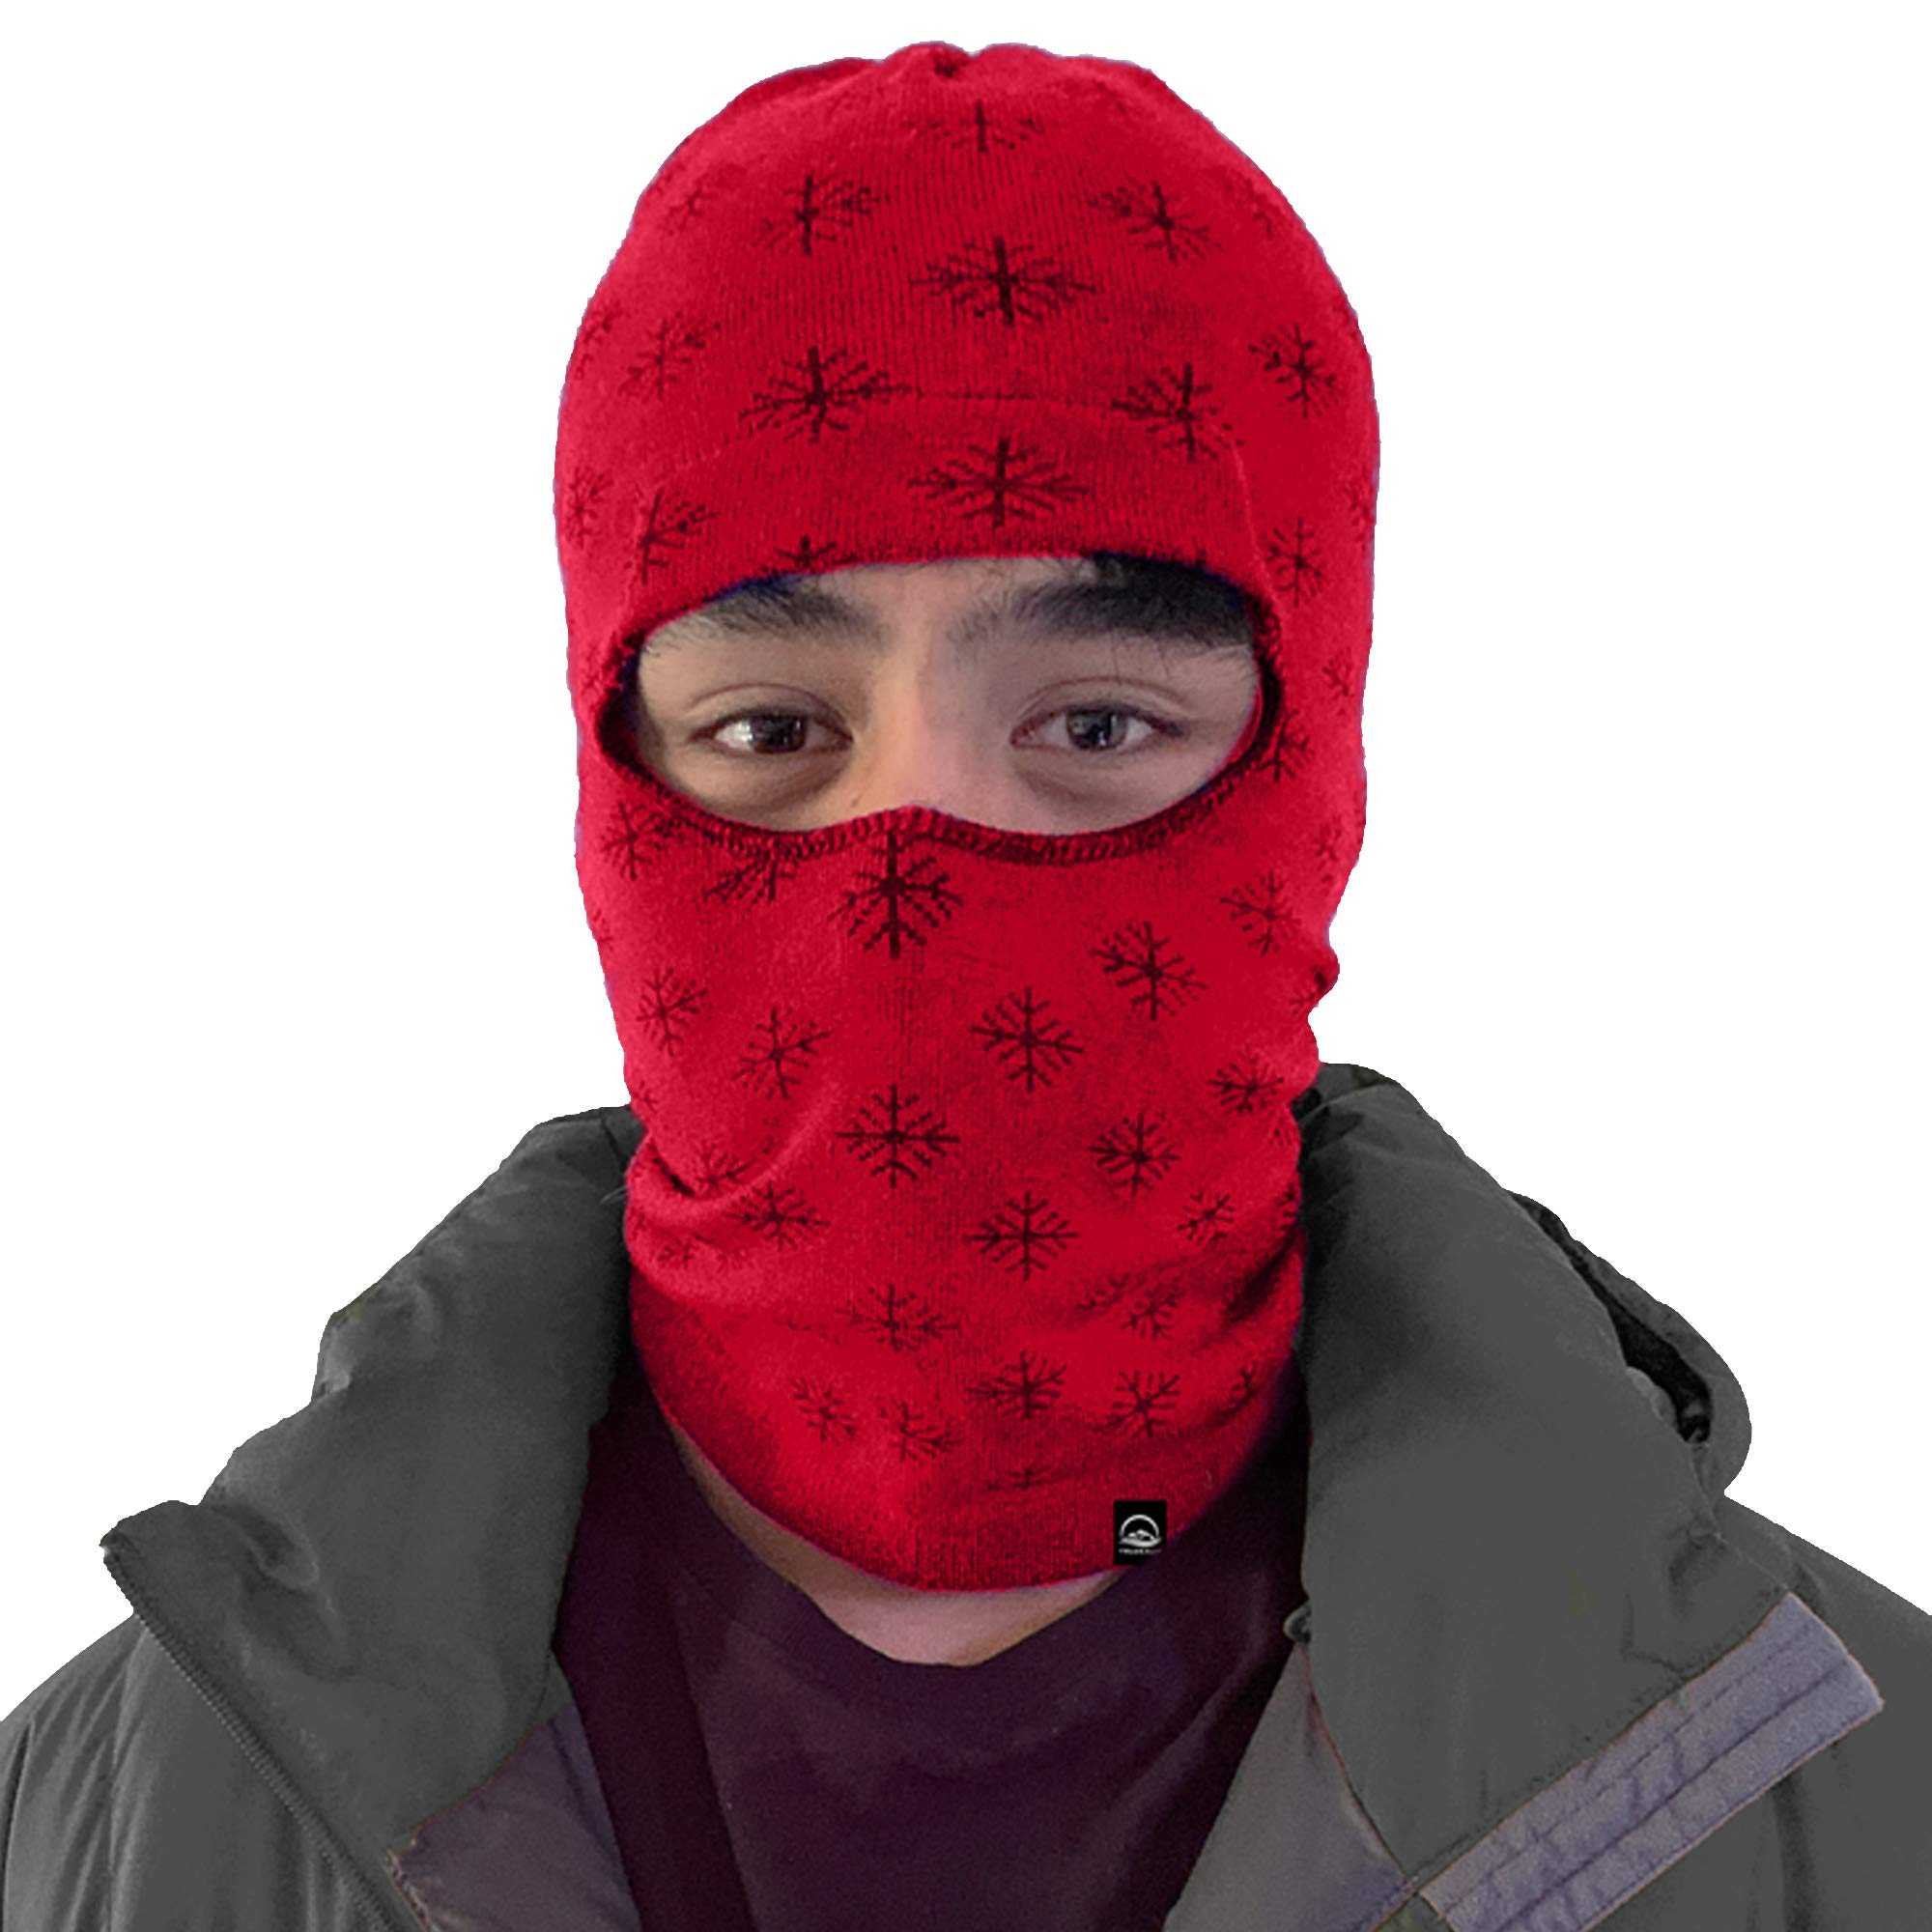 Balaclava Outdoor Wear Hat Cap Unisex New Zealand Made Merino Wool Luxurious Warmth and Soft with a Light Weight Stretchy Face Mask Stylish Unique Moisture Wicking with Thermal Properties Purple by Truzealia (Image #8)